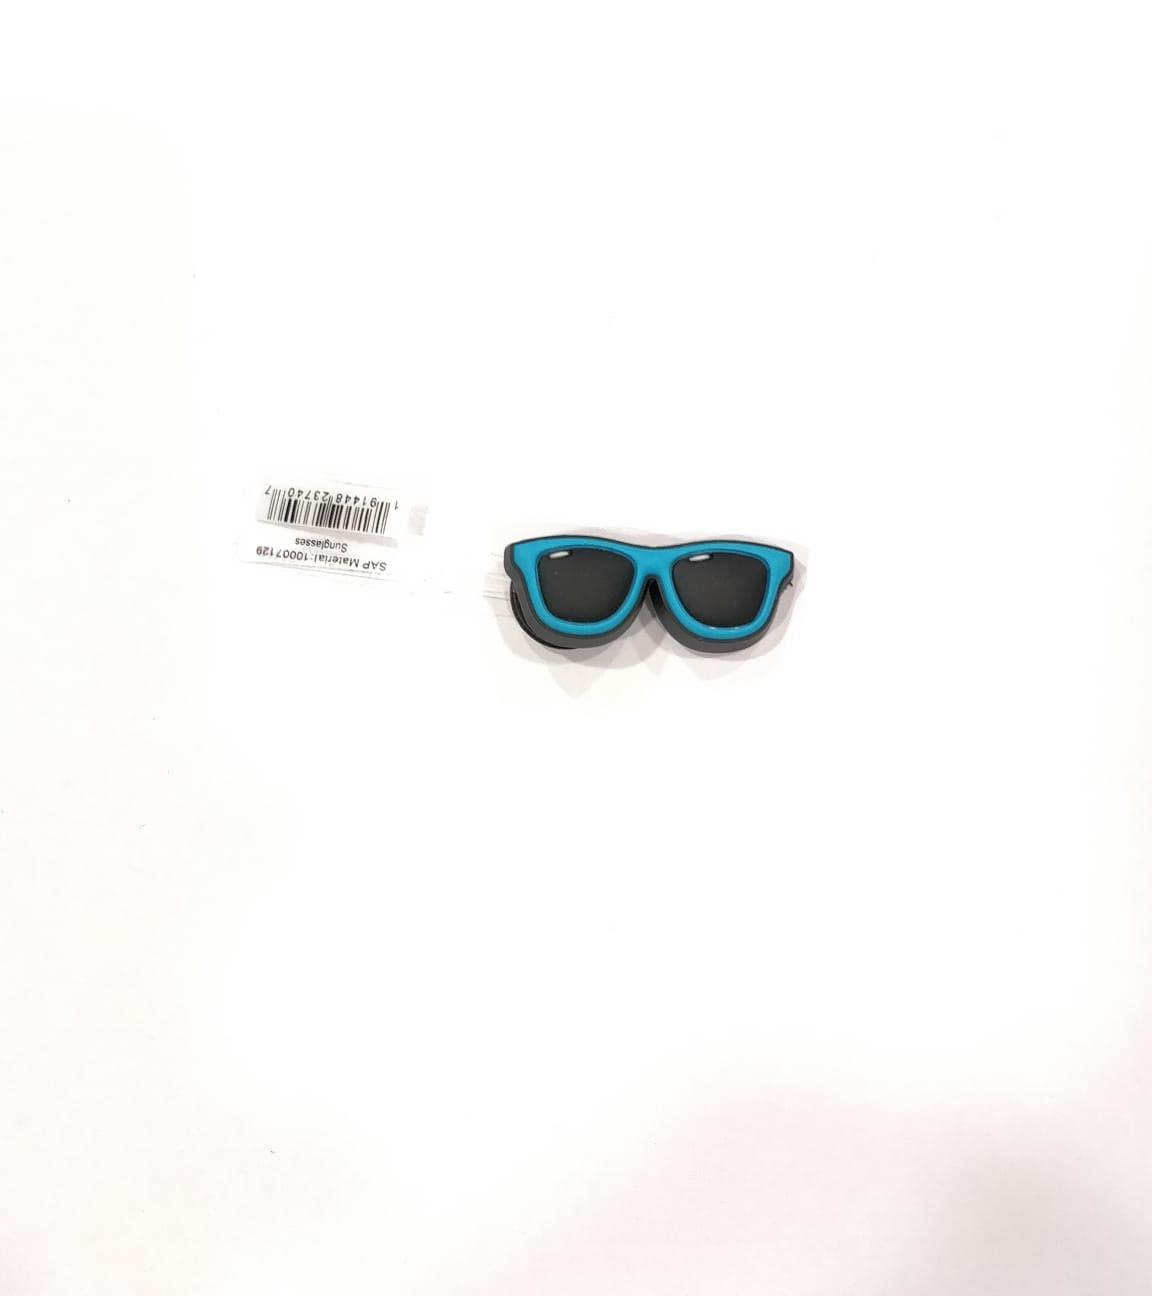 Crocs   10007129-1 SUNGLASSES EMOJI